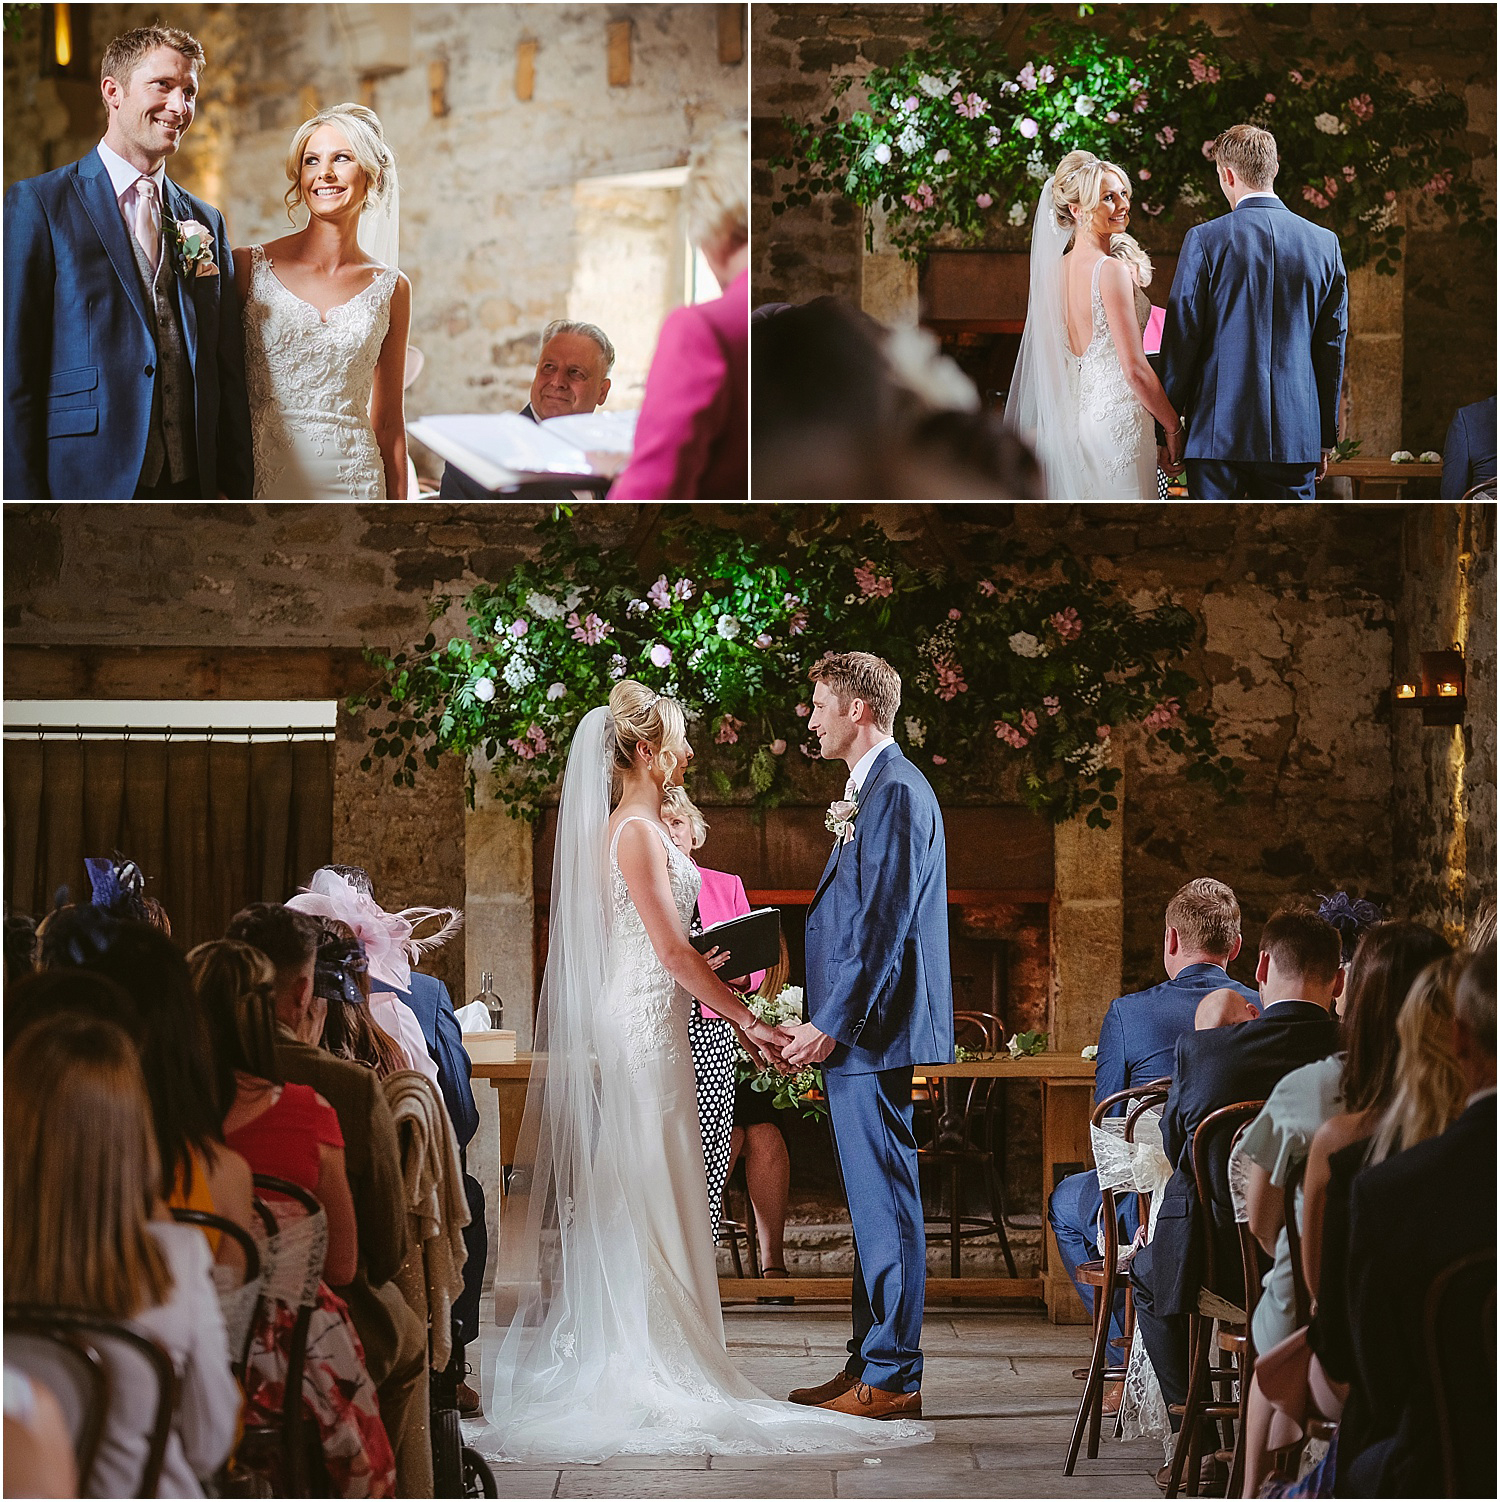 Healey Barn wedding by www.2tonephotography.co.uk 044.jpg